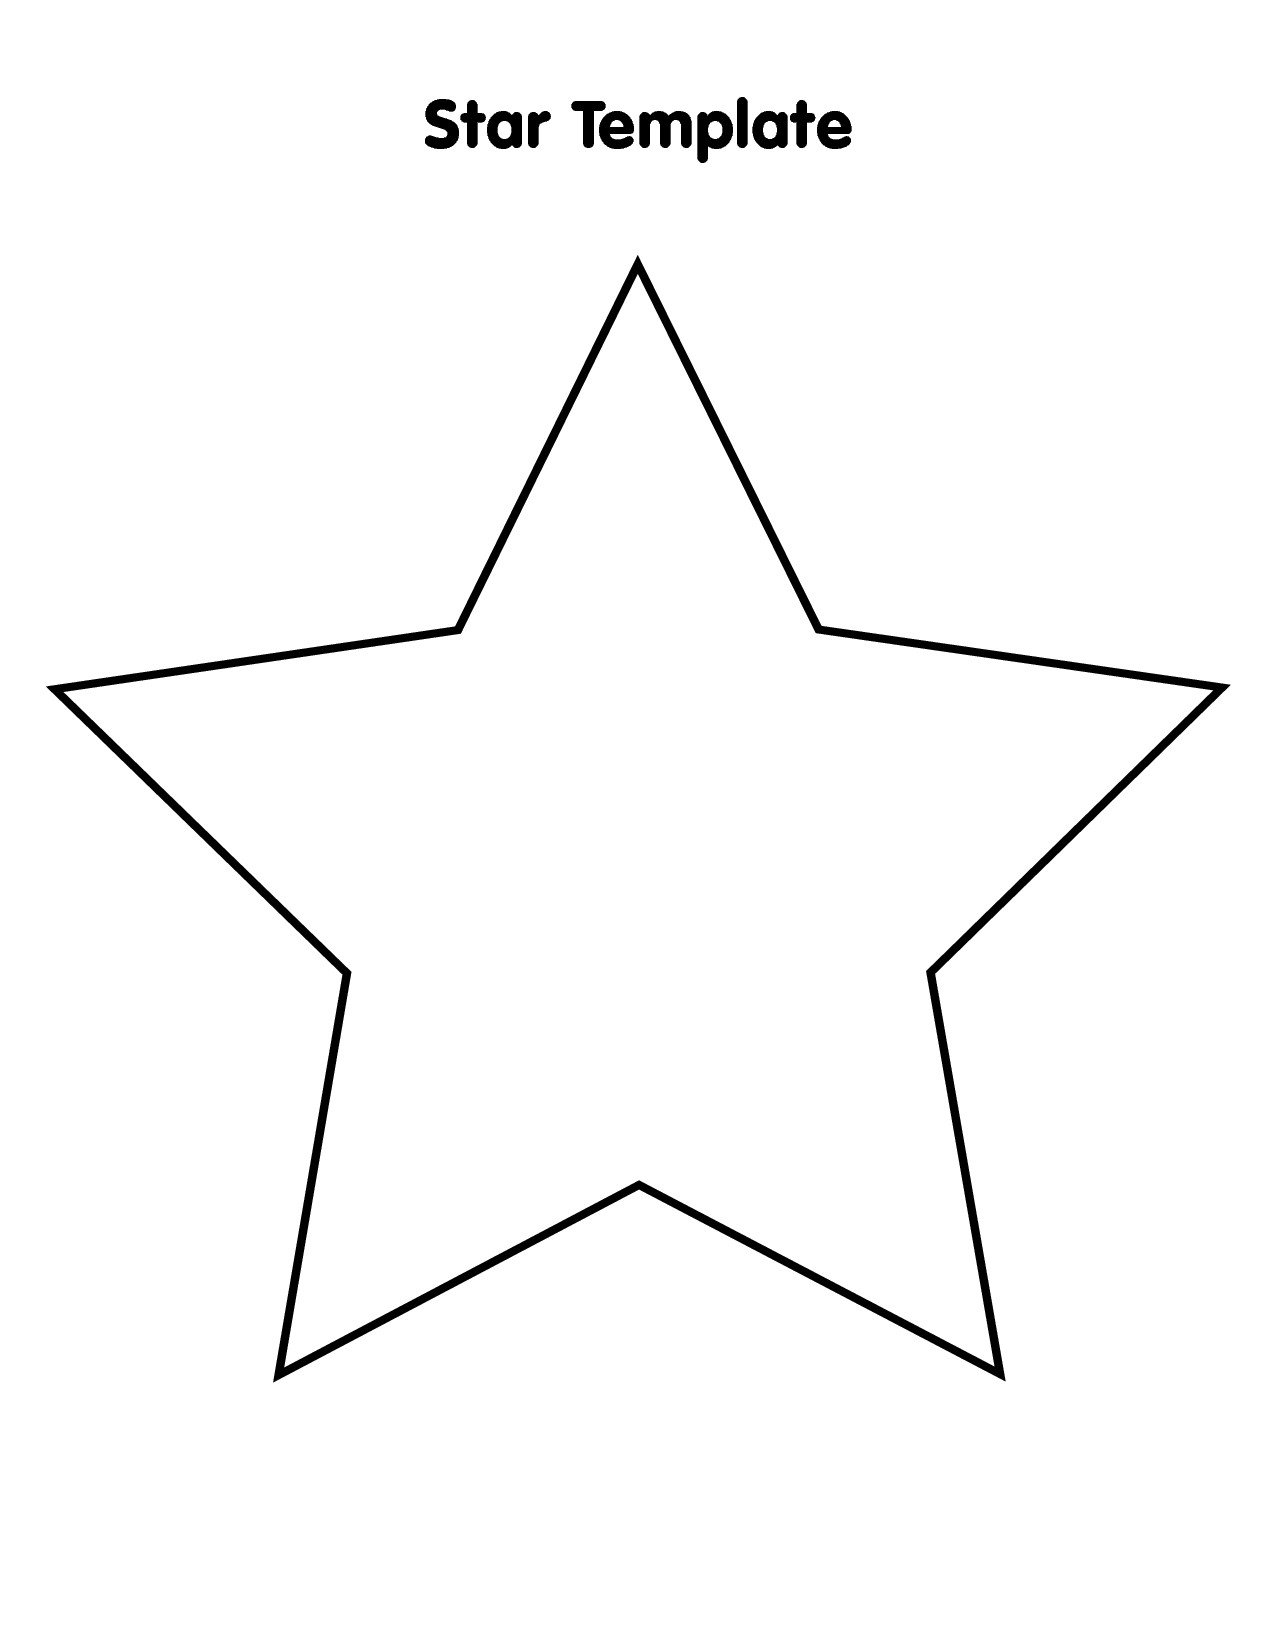 Large star template printable for Small star template printable free